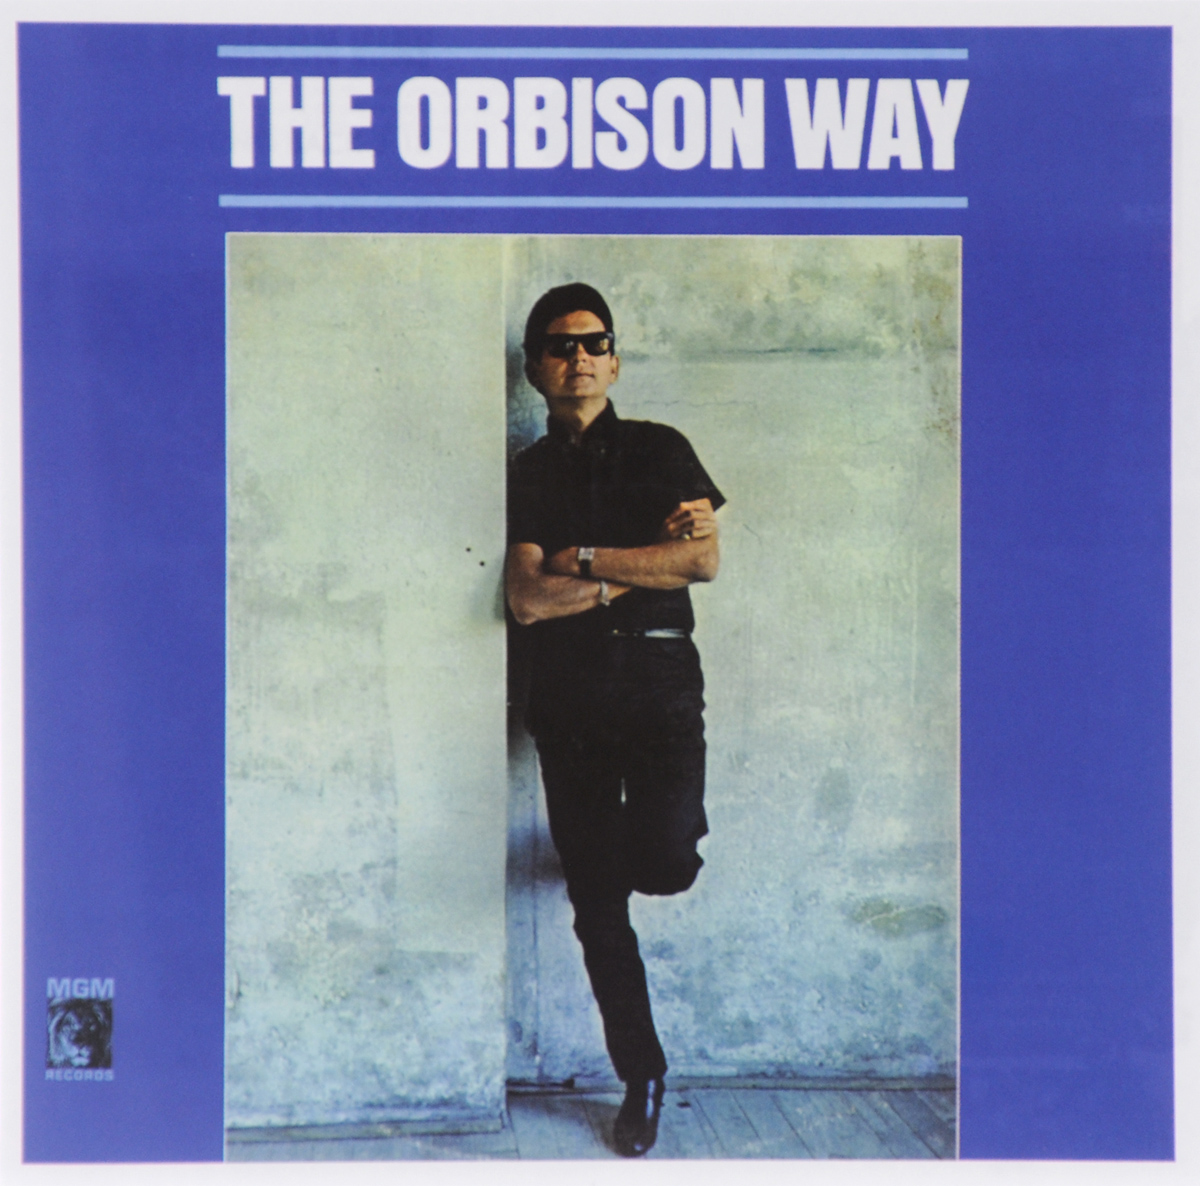 Рой Орбисон Roy Orbison. The Orbison Way рой орбисон хэнк уильямс старший roy orbison the mgm years 13 cd